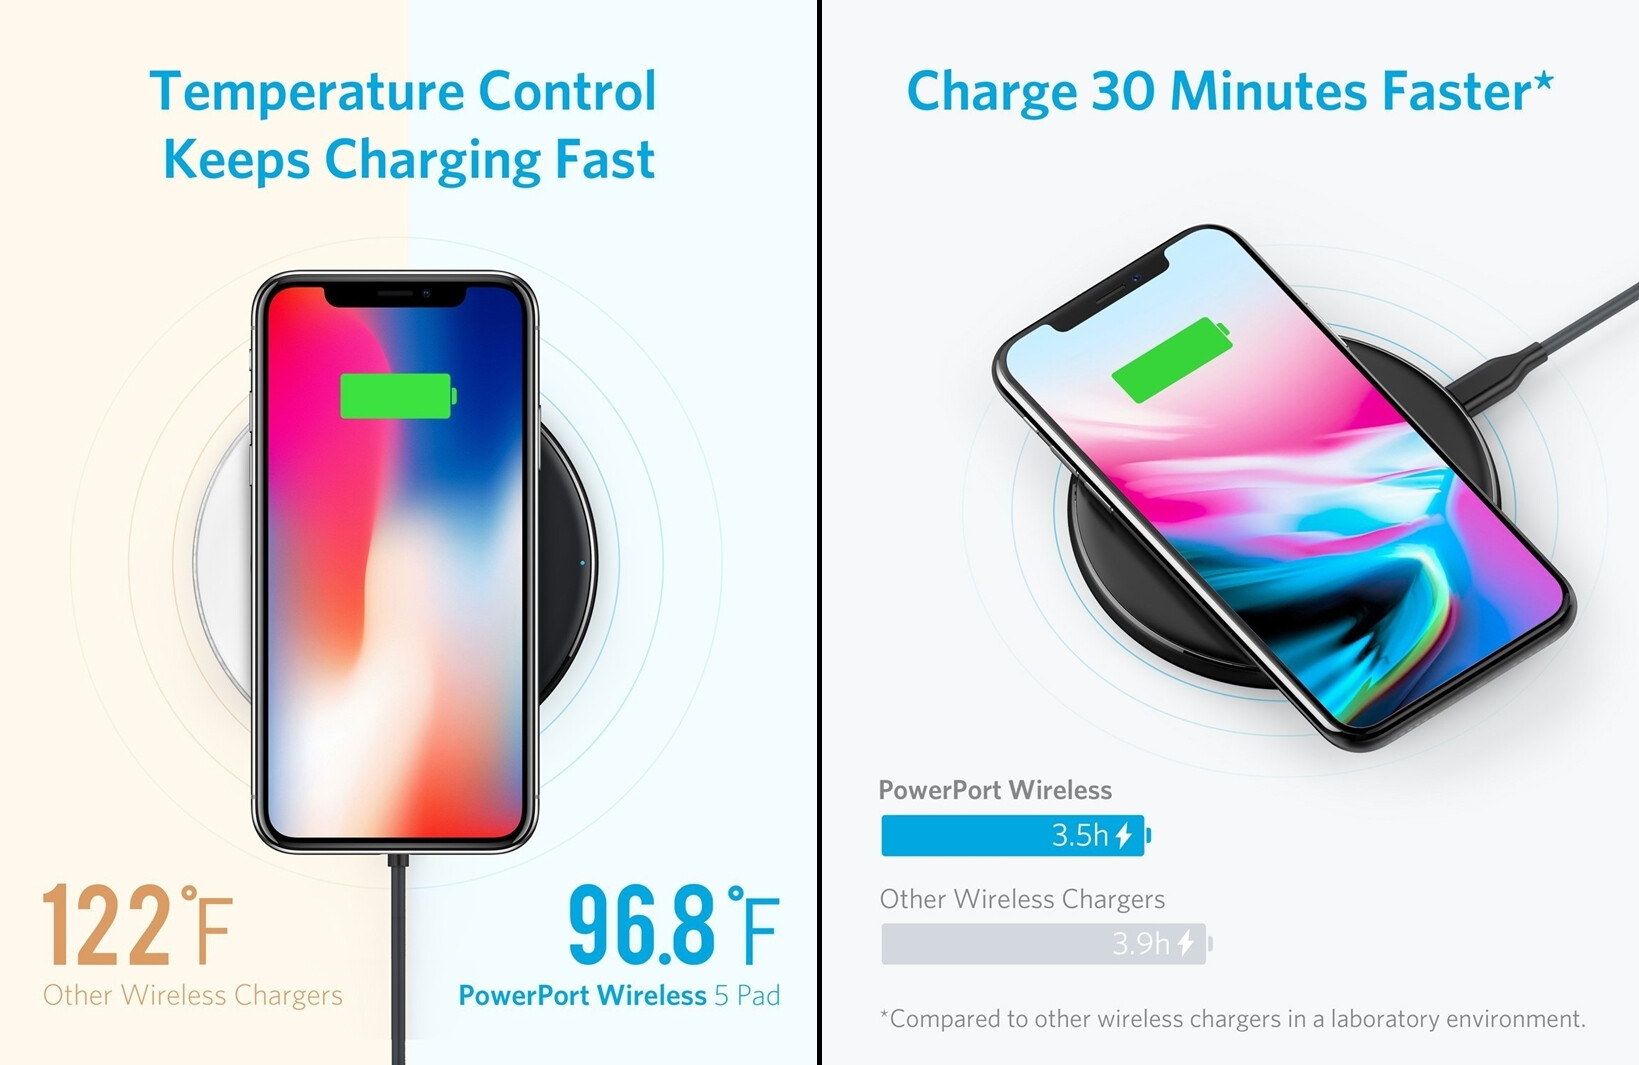 Get Discounted Anker And Ravpower Wireless Chargers Power Bank Here Samsung Galaxy S9 Free Powerbank Mah 10000 Black A Gift To Our Readers Banks